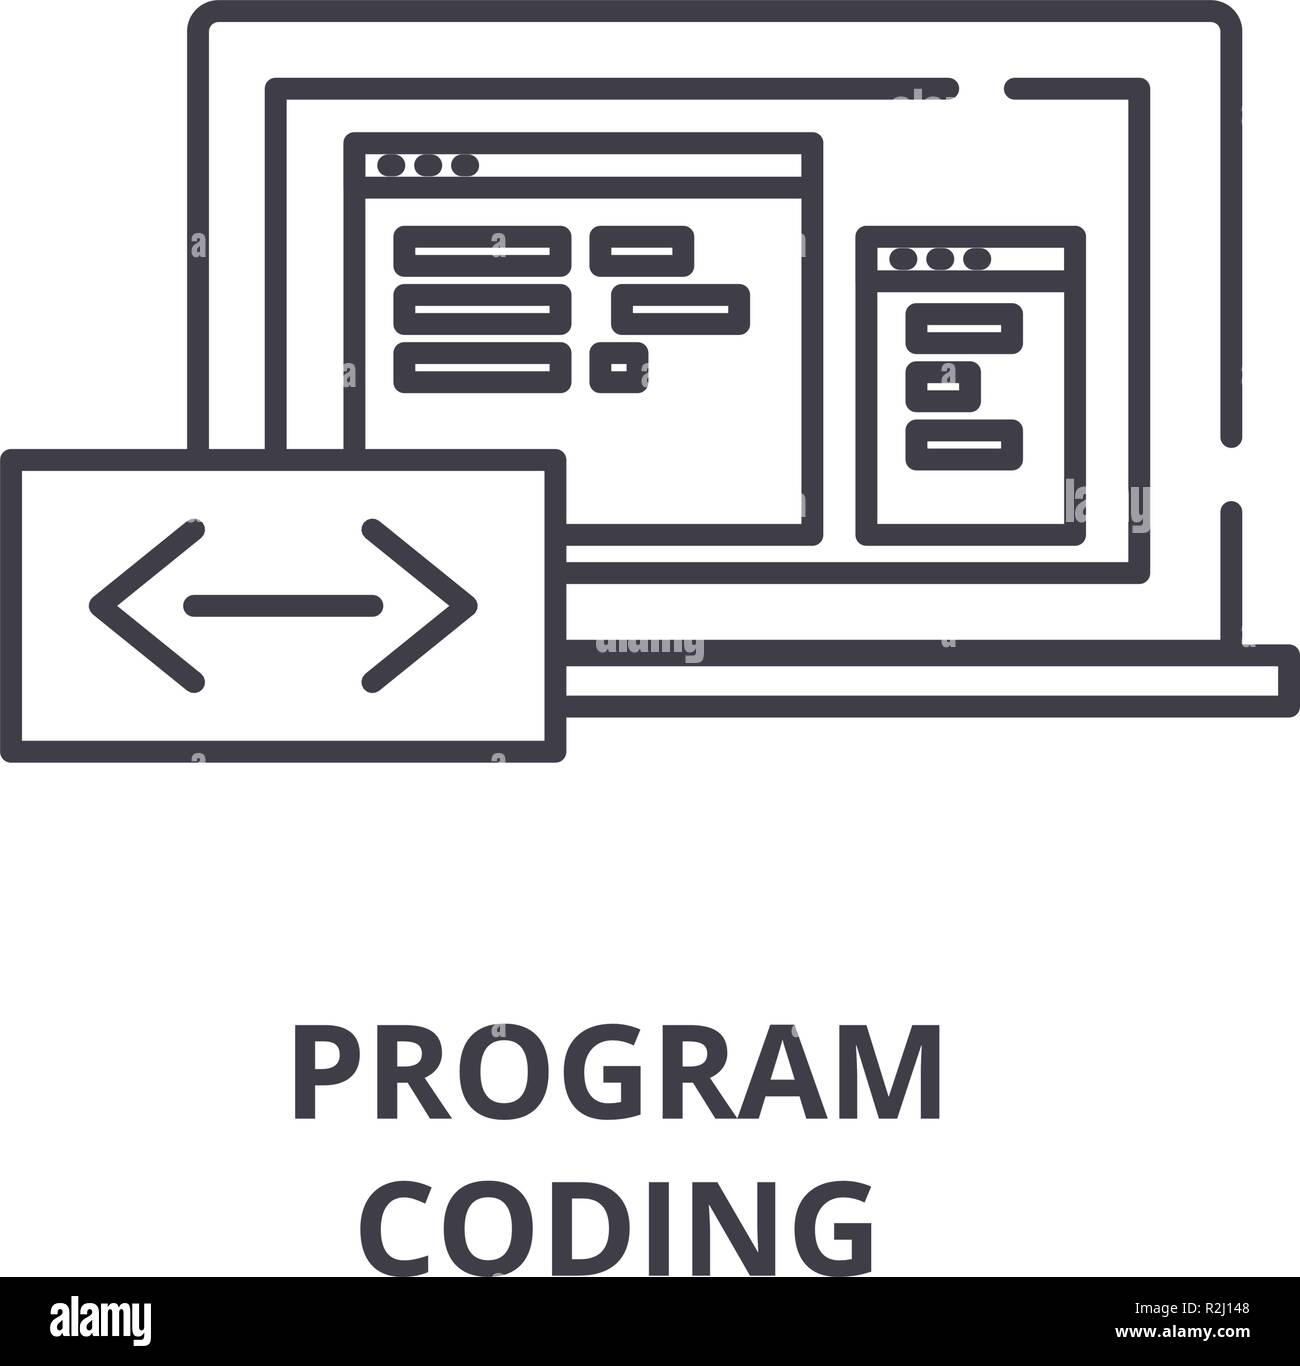 Program coding line icon concept. Program coding vector linear illustration, symbol, sign - Stock Image